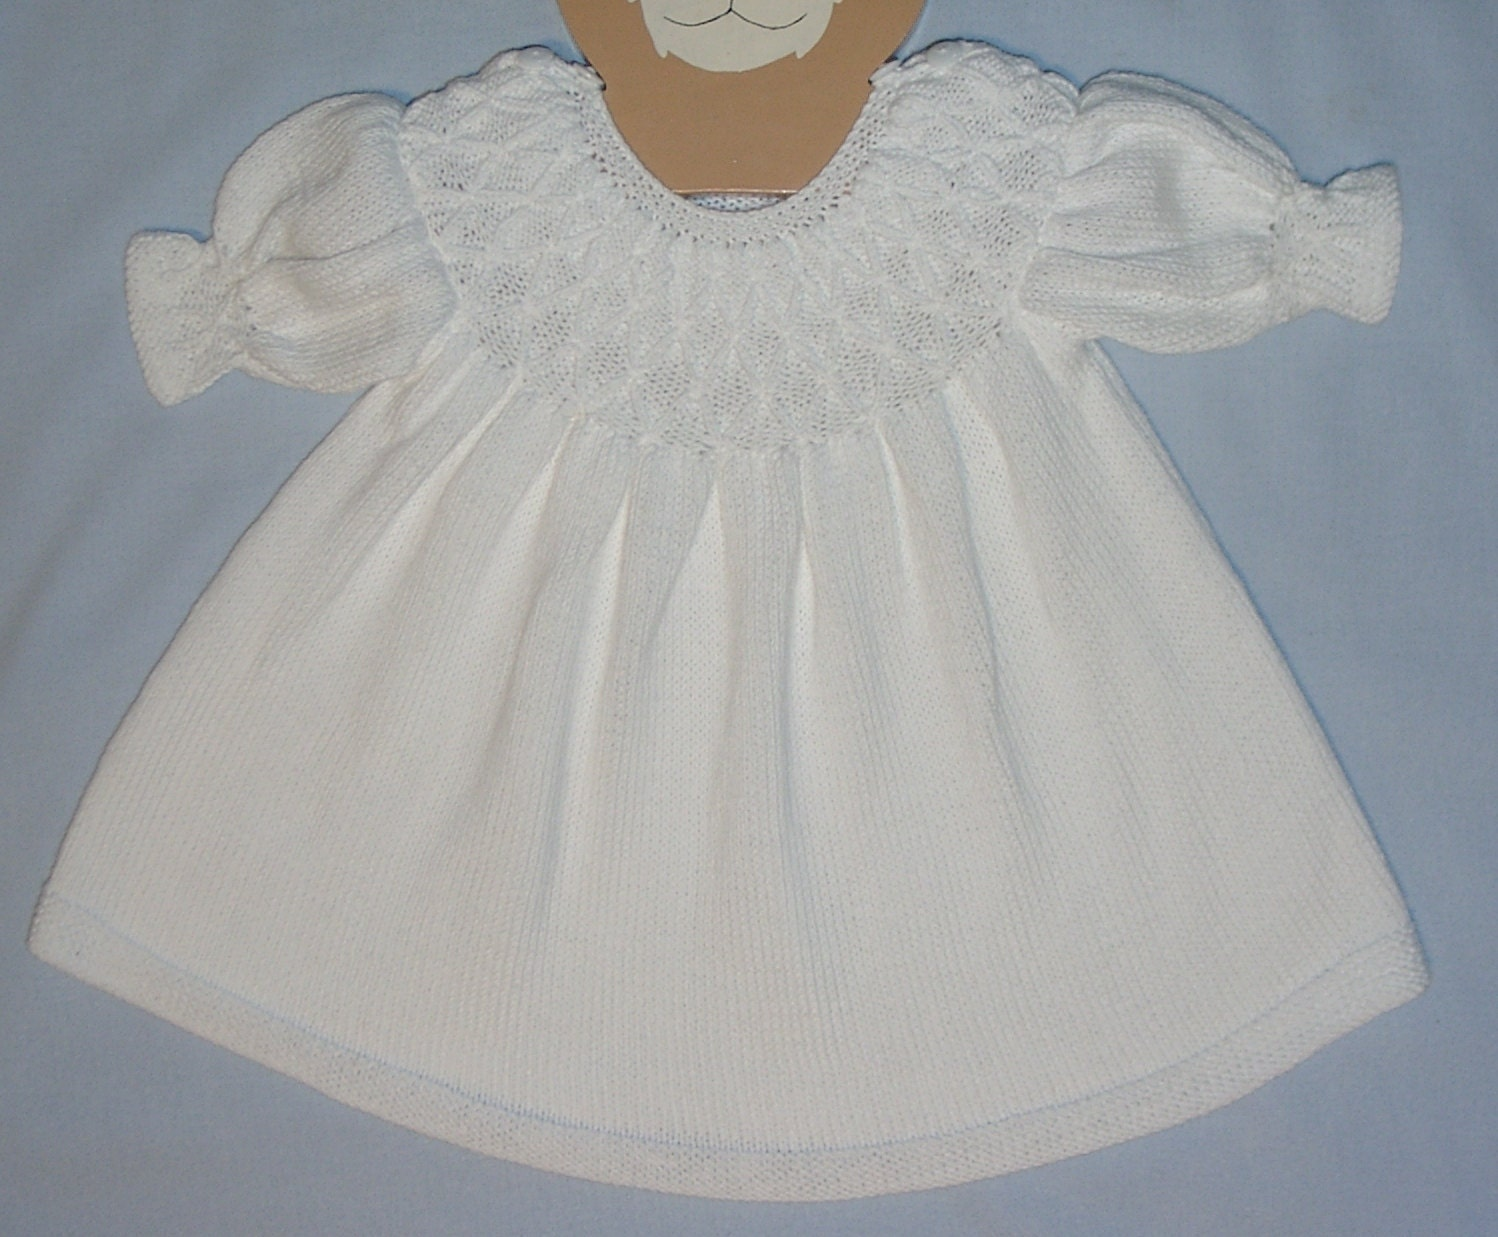 Baby Girl S Hand Knitted And Smocked Dress In White Cotton